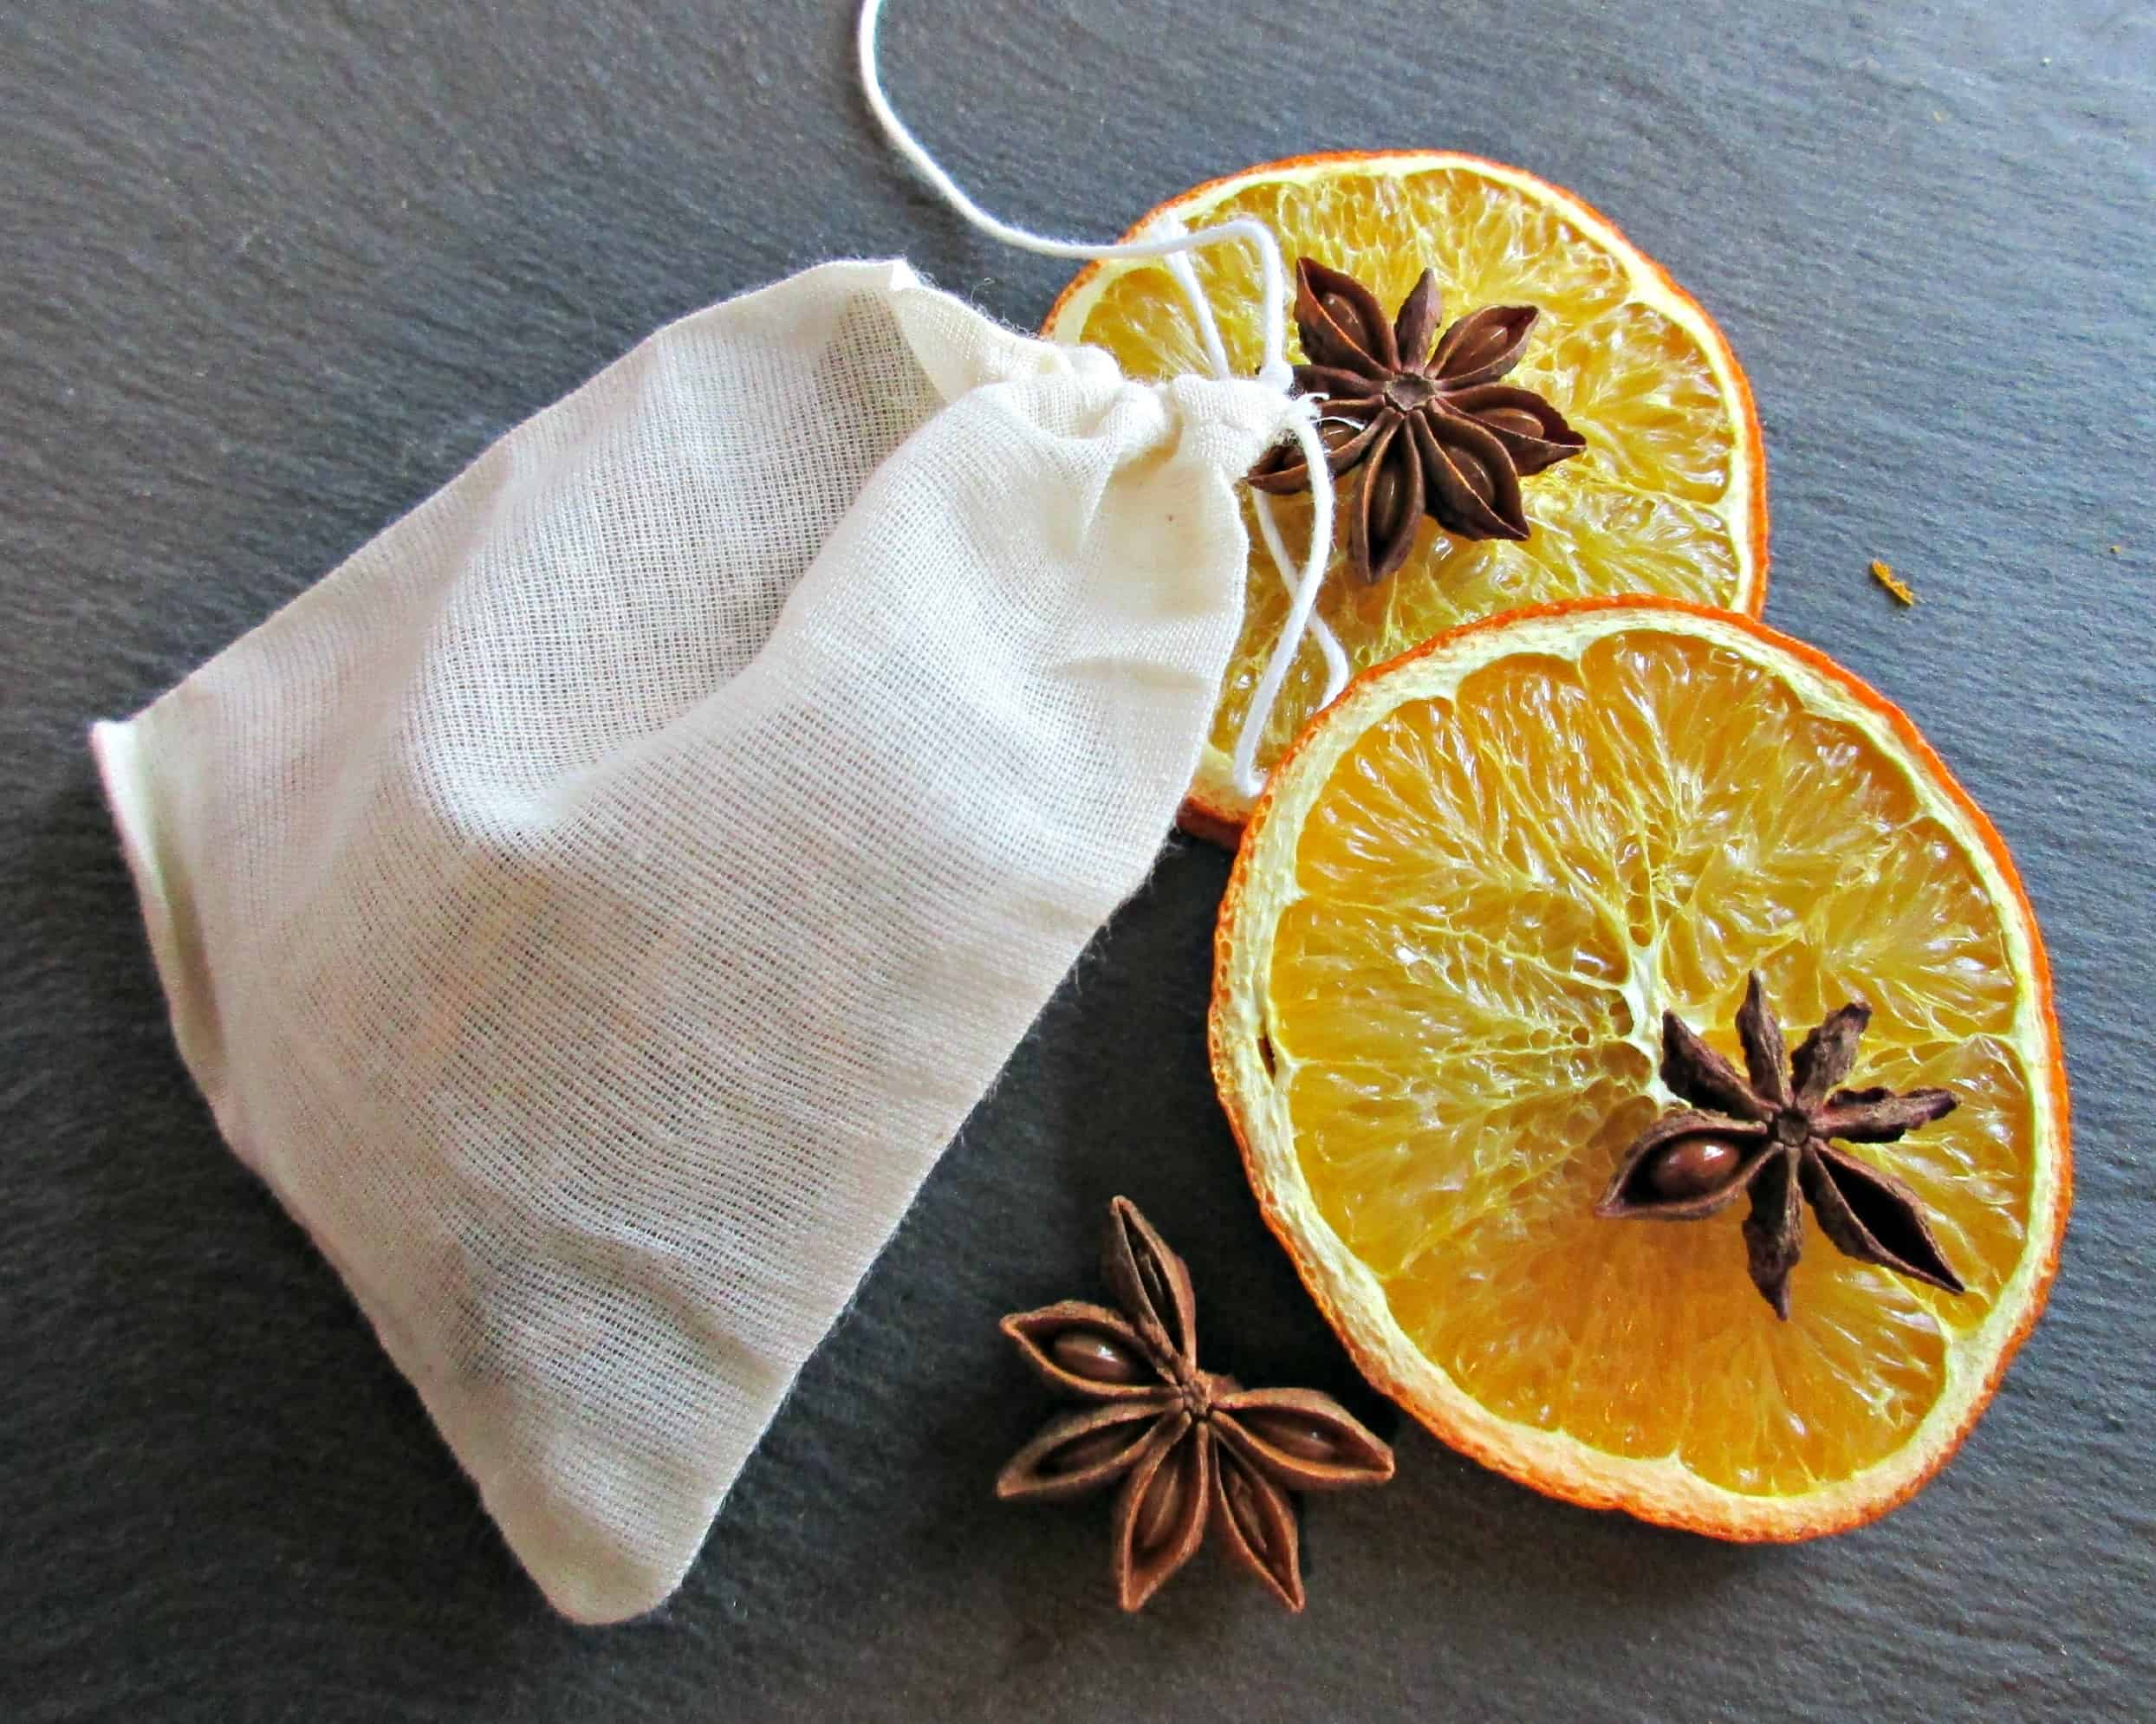 From Craft Invaders DIY Spice Bags make a lovely, thoughtful gift, and can be adapted to suit the taste of the recipient. Includes lovely apple juice recipe